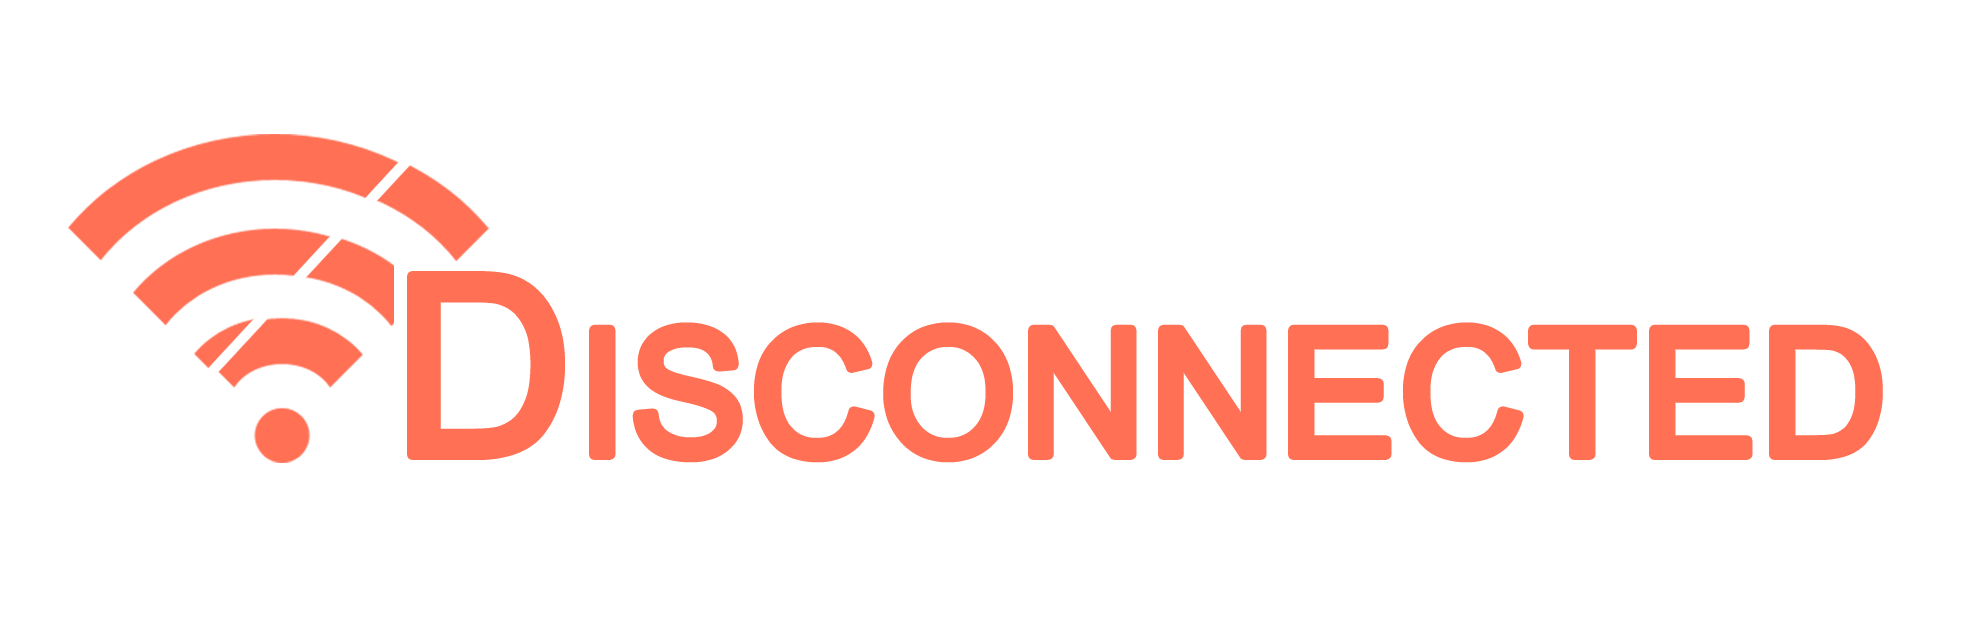 disconnected-logo.png